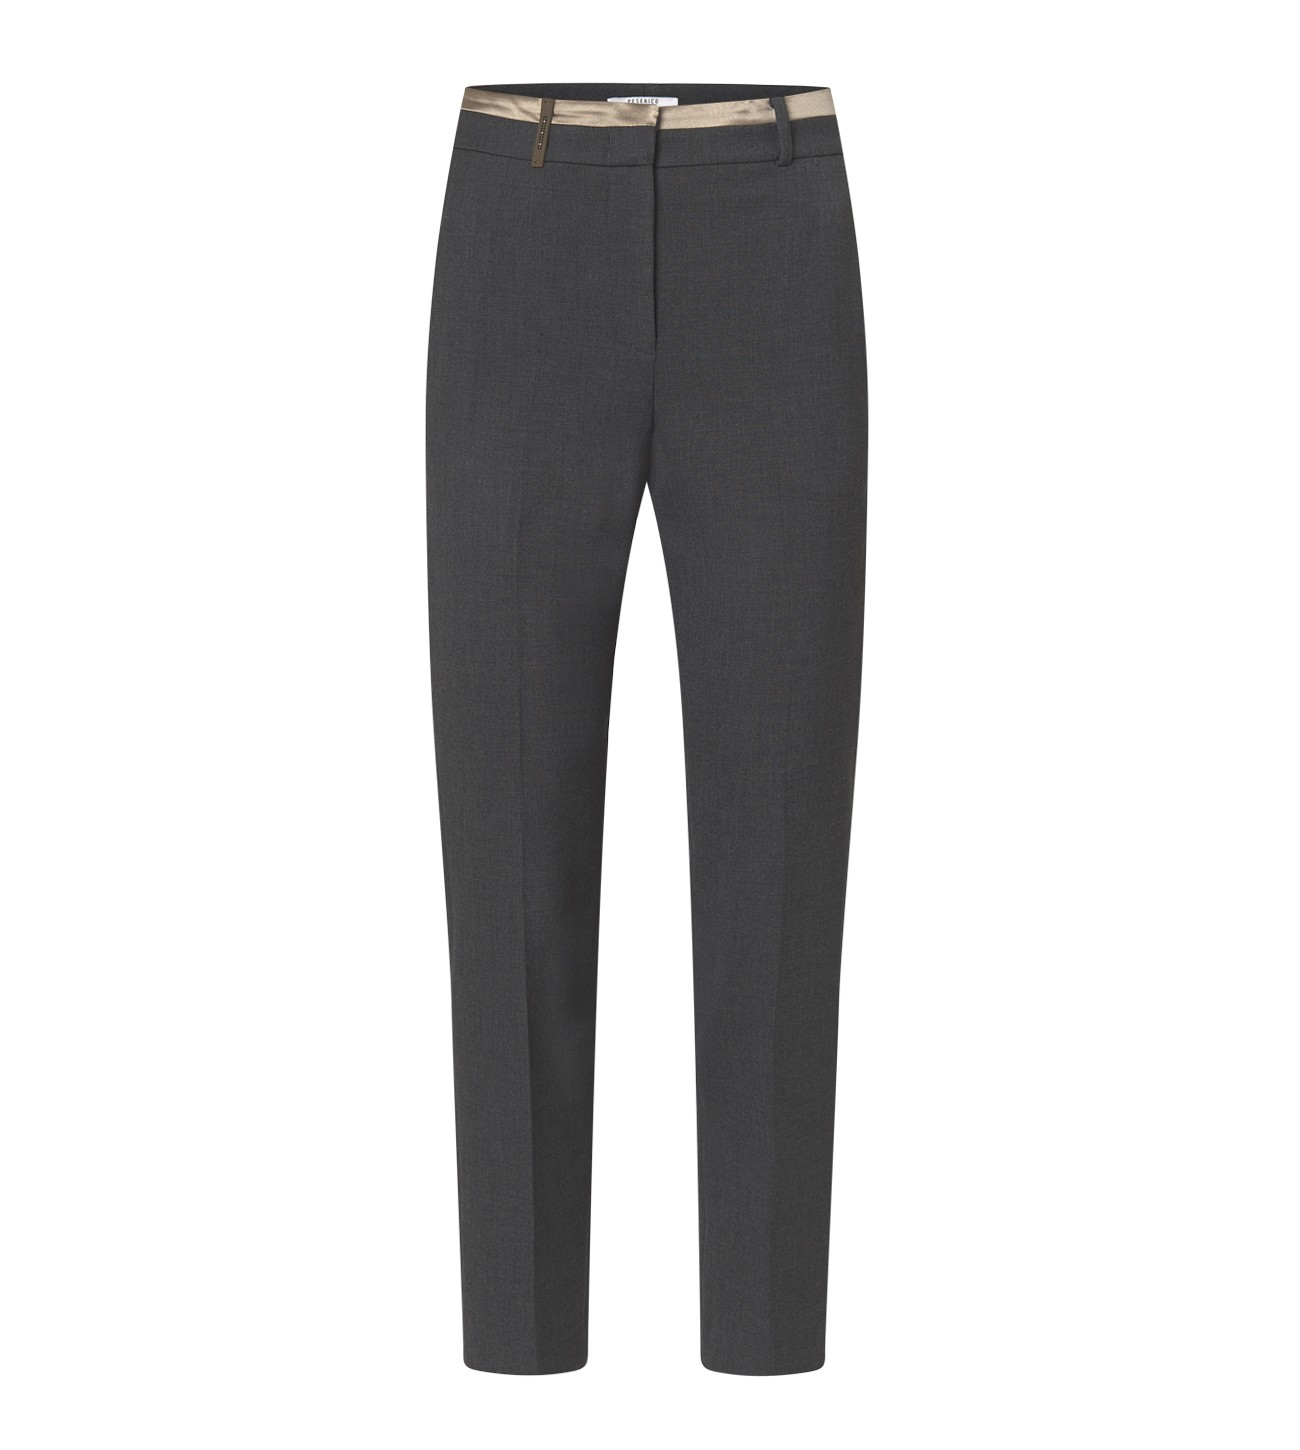 PESERICO_BASIC_TROUSERS_WITH_SILK_DETAIL_IN_WAIST_MARIONA_FASHION_CLOTHING_WOMAN_SHOP_ONLINE_P04662